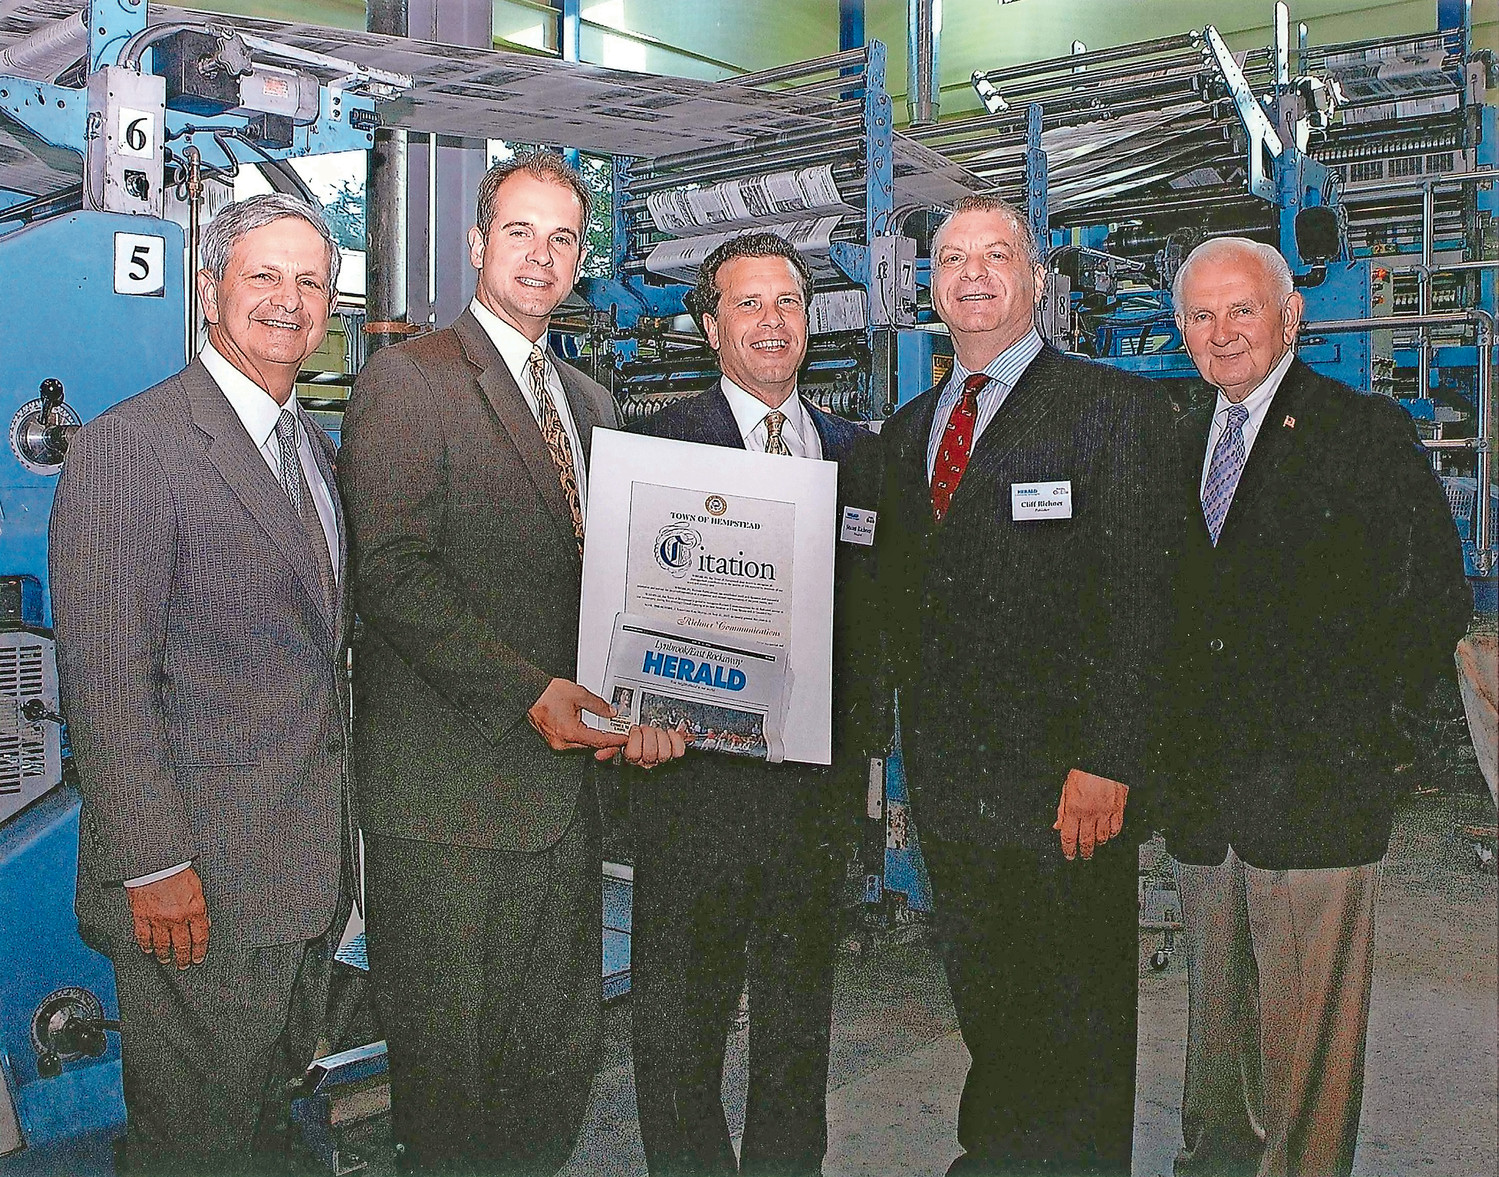 Former Town Supervisor Richard Guardino, far left, Town Councilman Ed Ambrosino, Stuart and Cliff Richner, and former Valley Stream Mayor Ed Cahill in 2007 at the grand opening reception of Richner Communication's new building in Garden City.